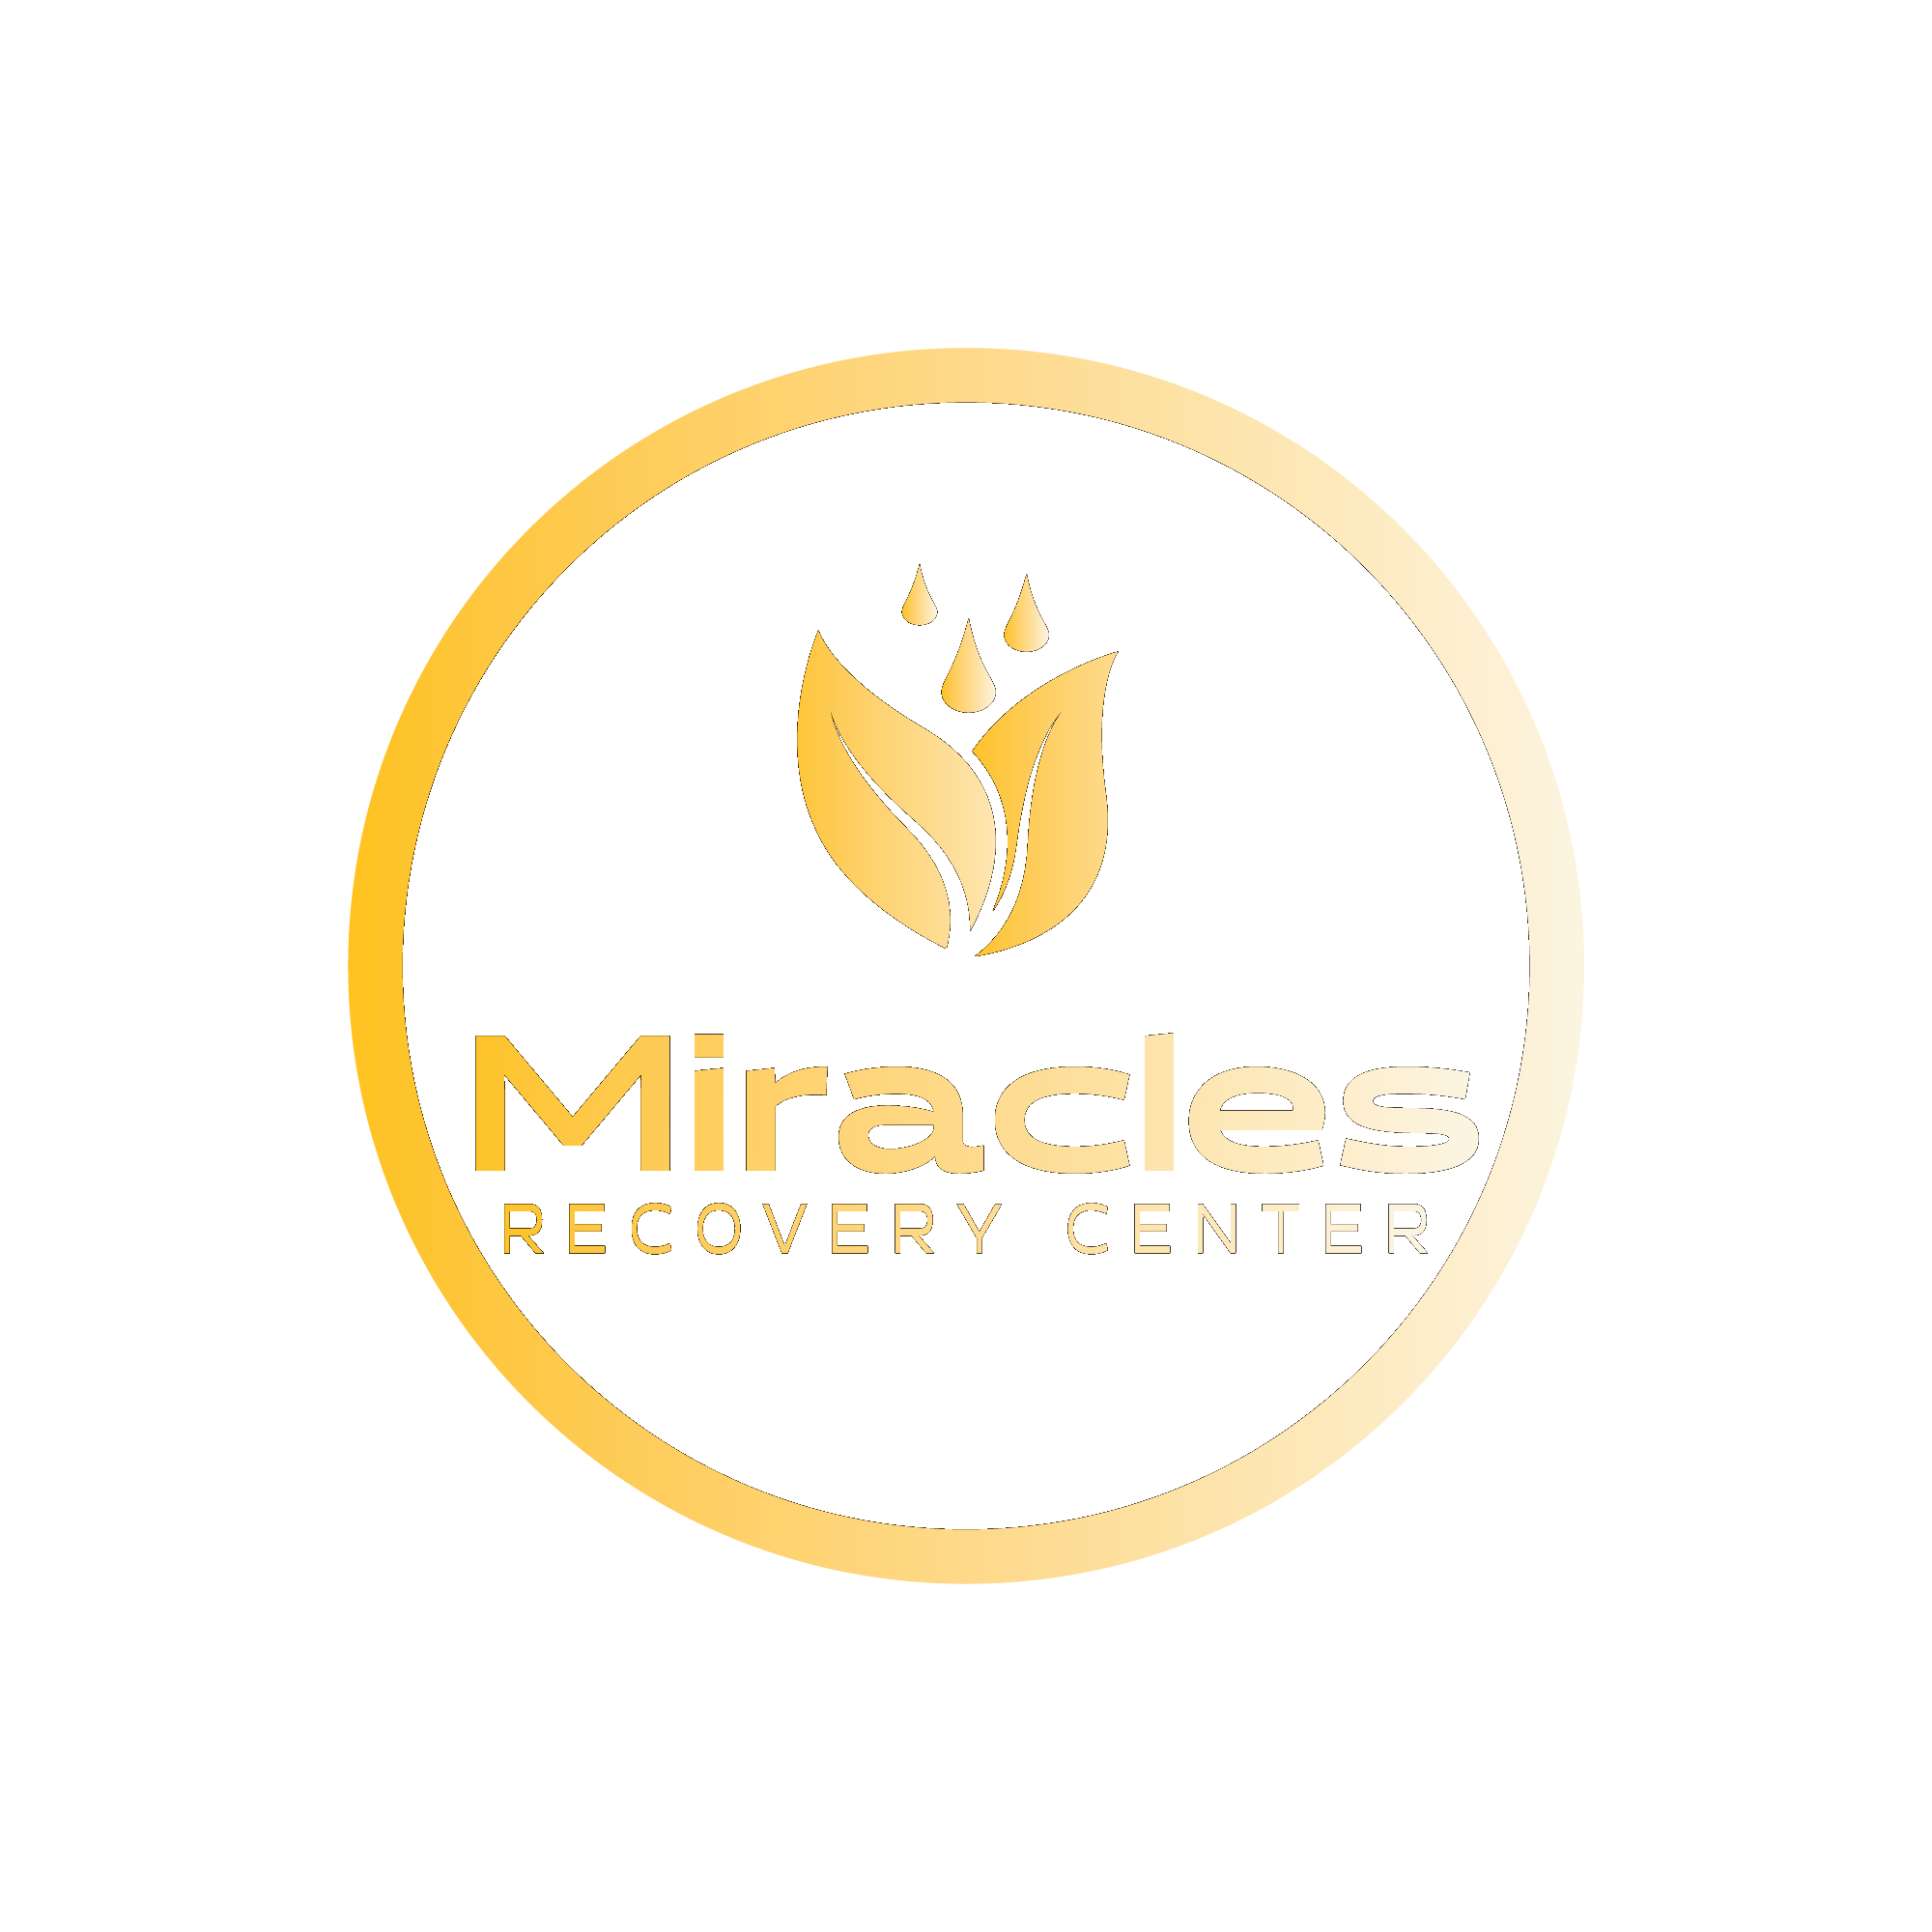 Miracles Recovery Center